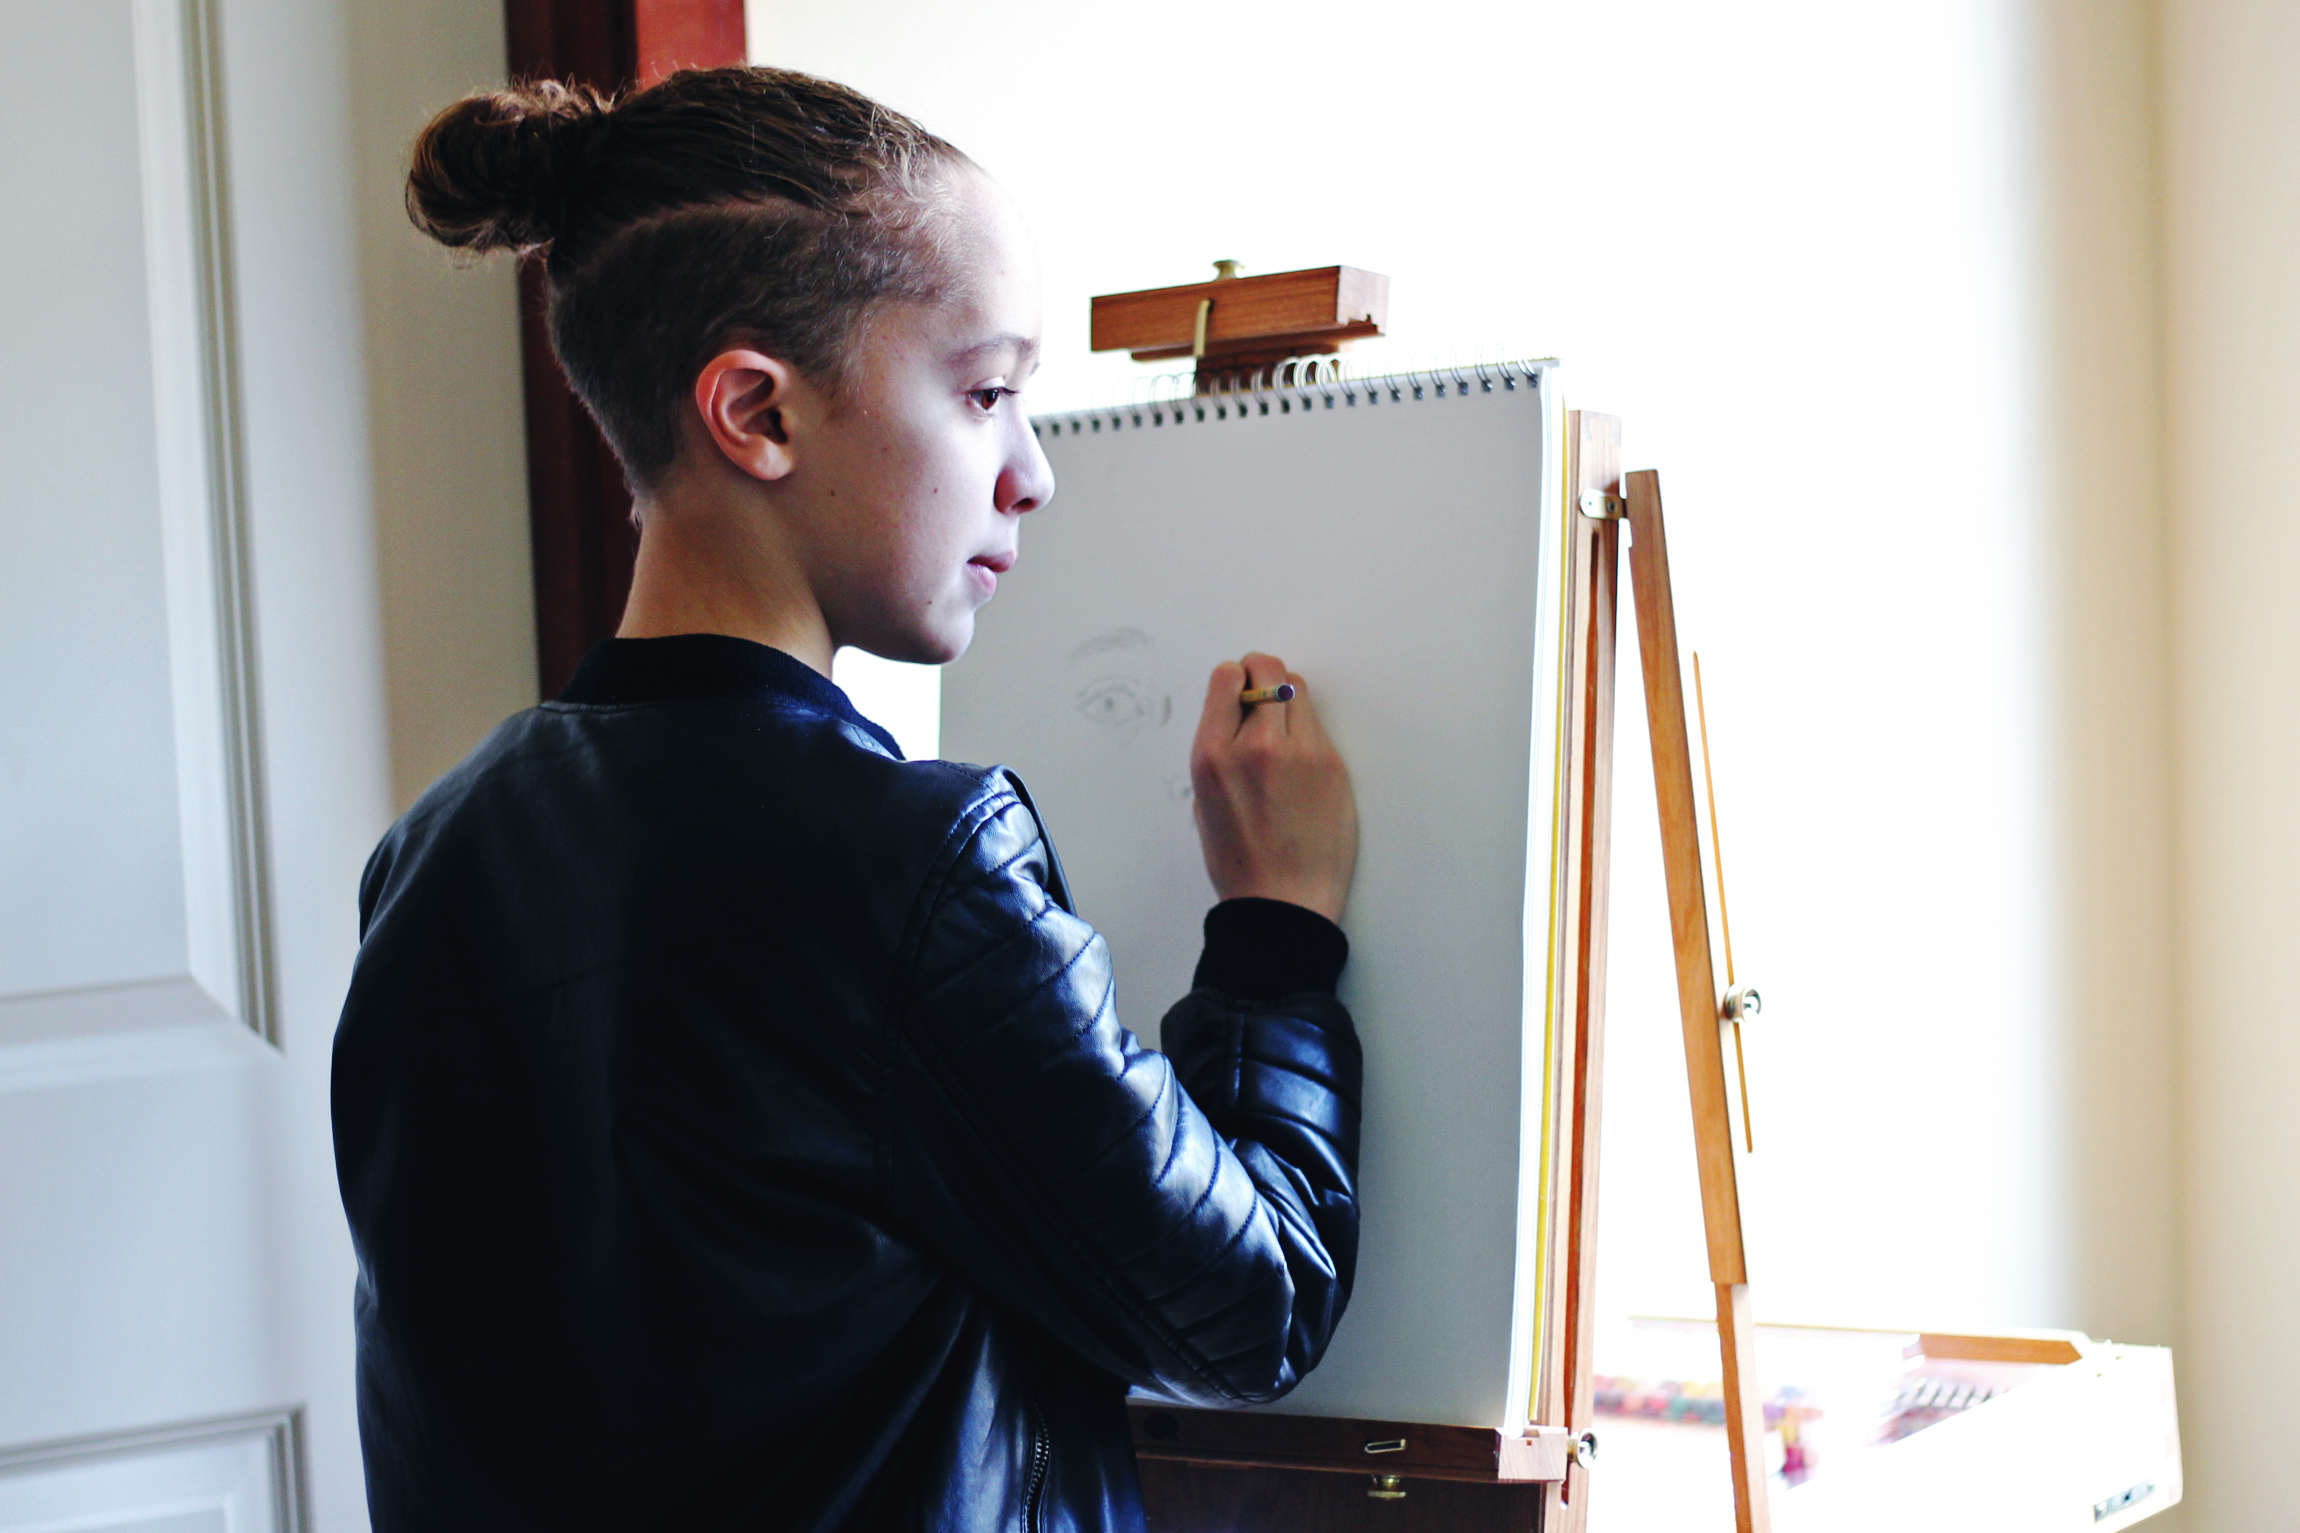 Gifted with Creativity — TO LIVE A CREATIVE LIFE — All Kids Are Gifted